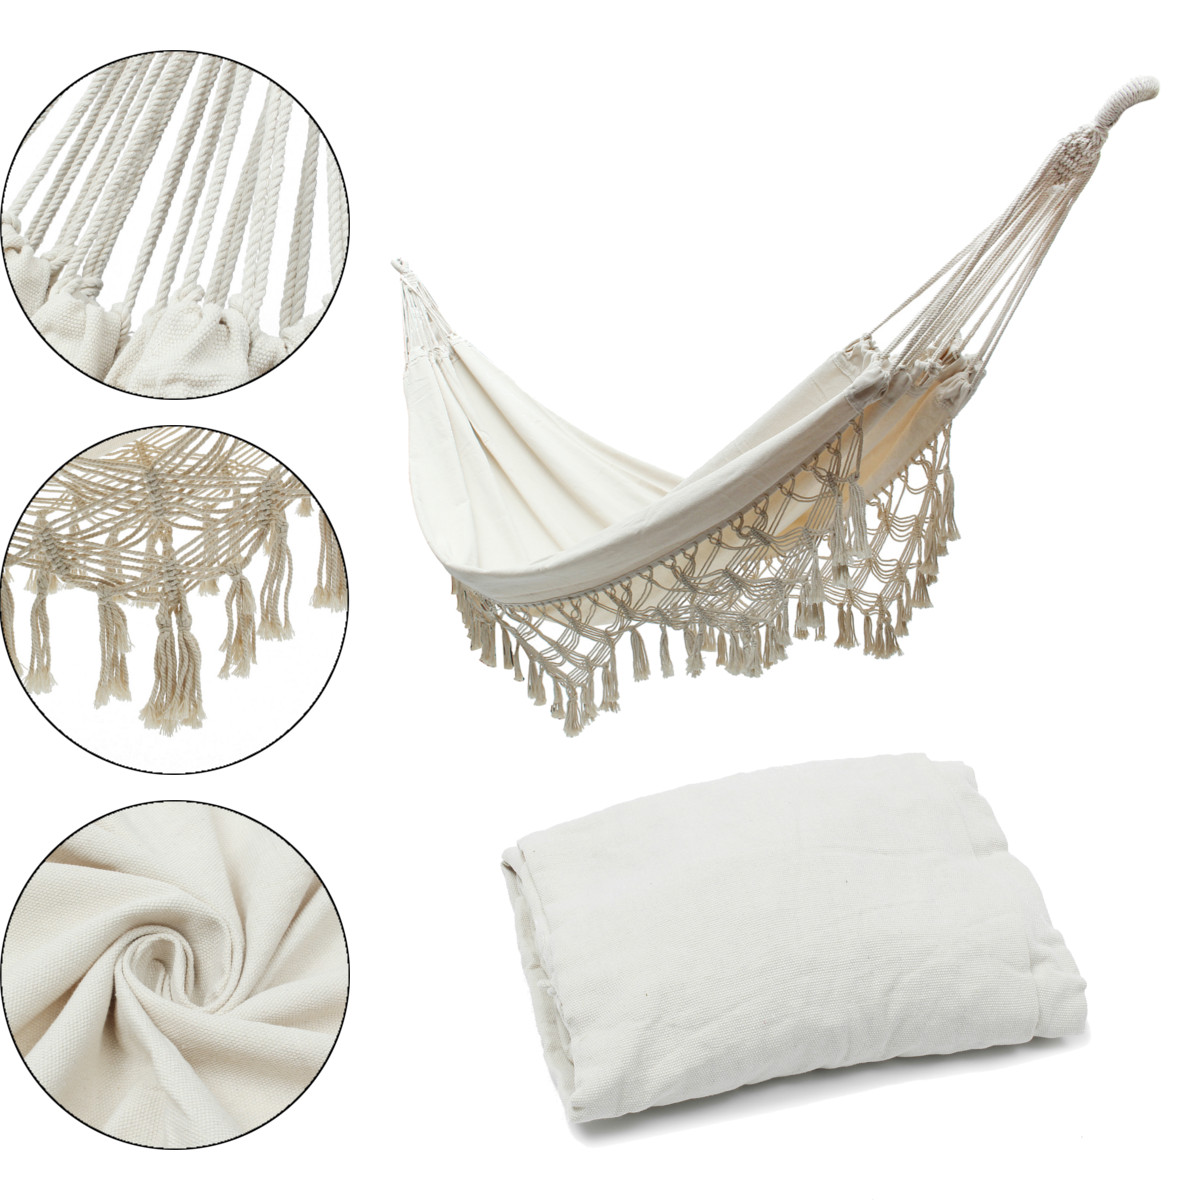 New Hammock Chairs Swing Outdoor Garden Home White Cotton Rope Morocco Macrame Hammock Chairs Swing Yard Leisure Hanging Bed